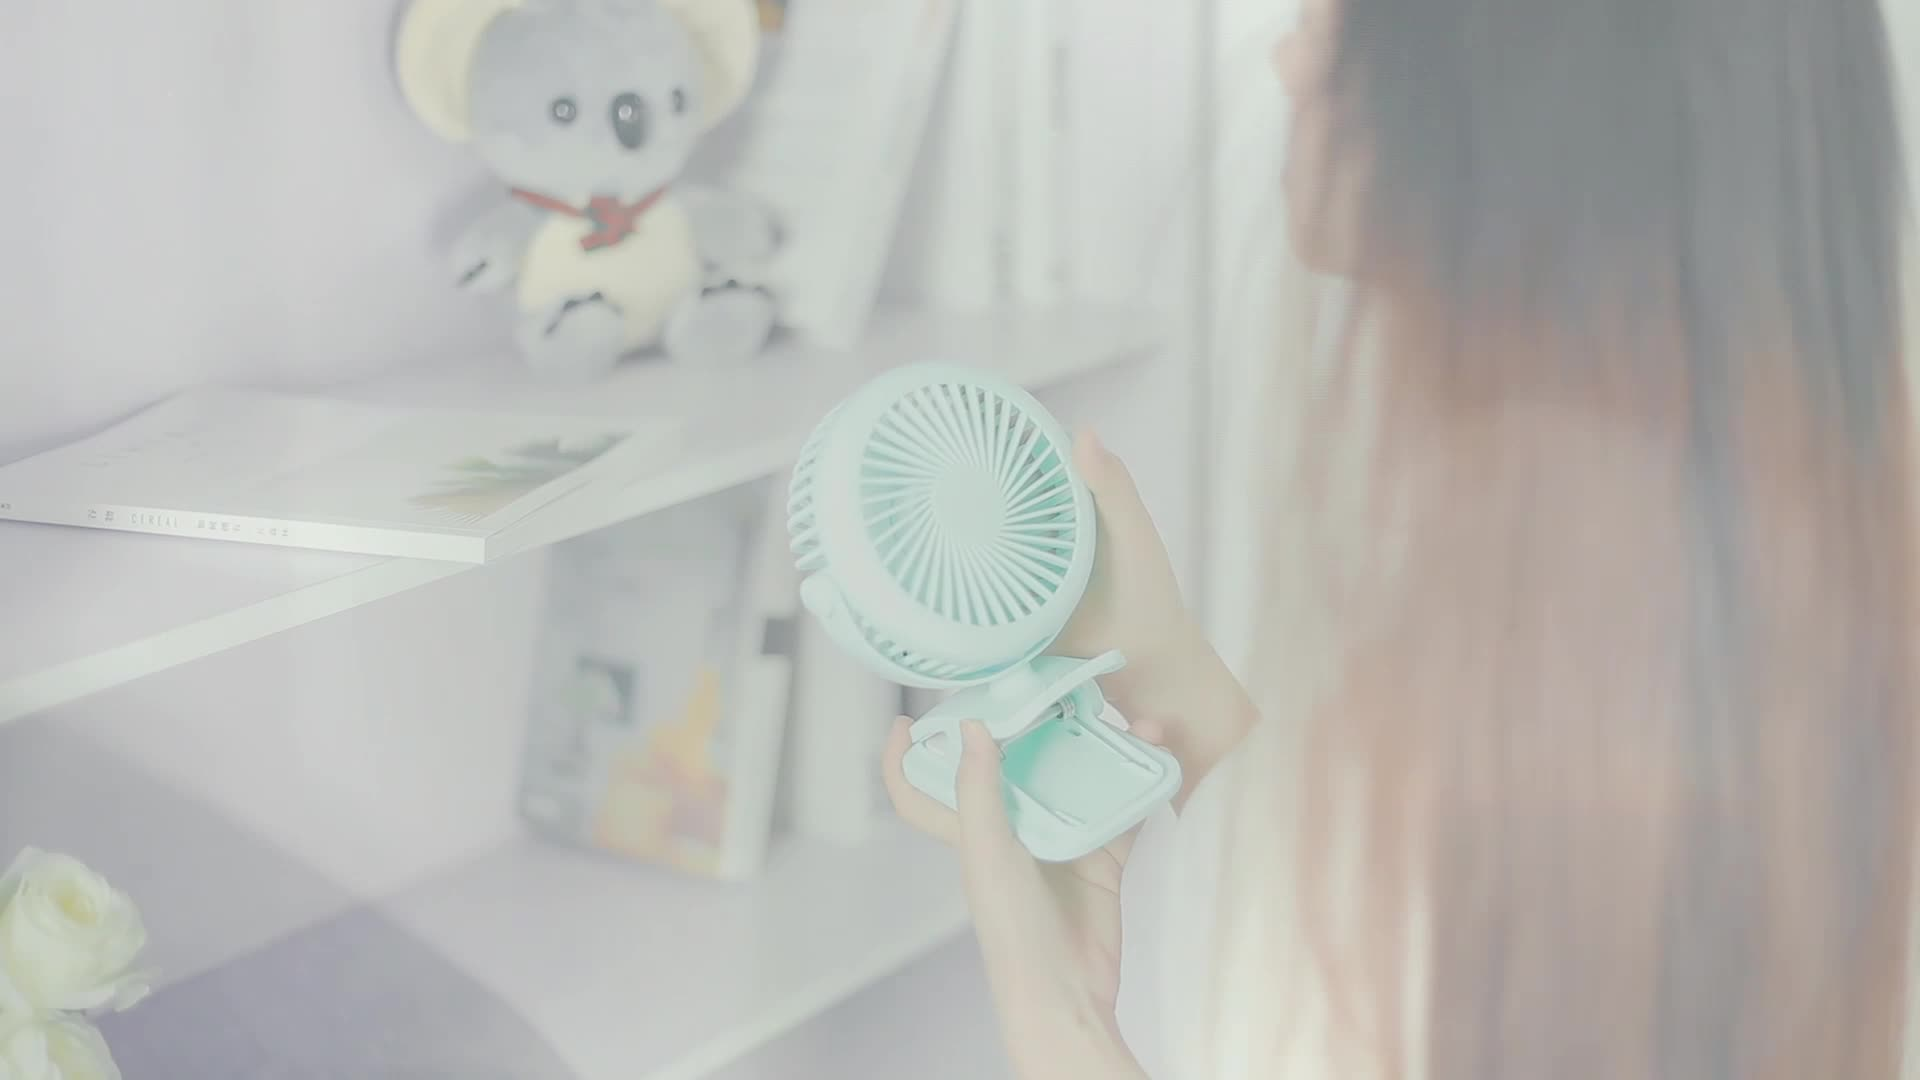 Joyroom amazon hot seller 2018 Battery Operated Clip Portable rechargeable desk usb mini fan